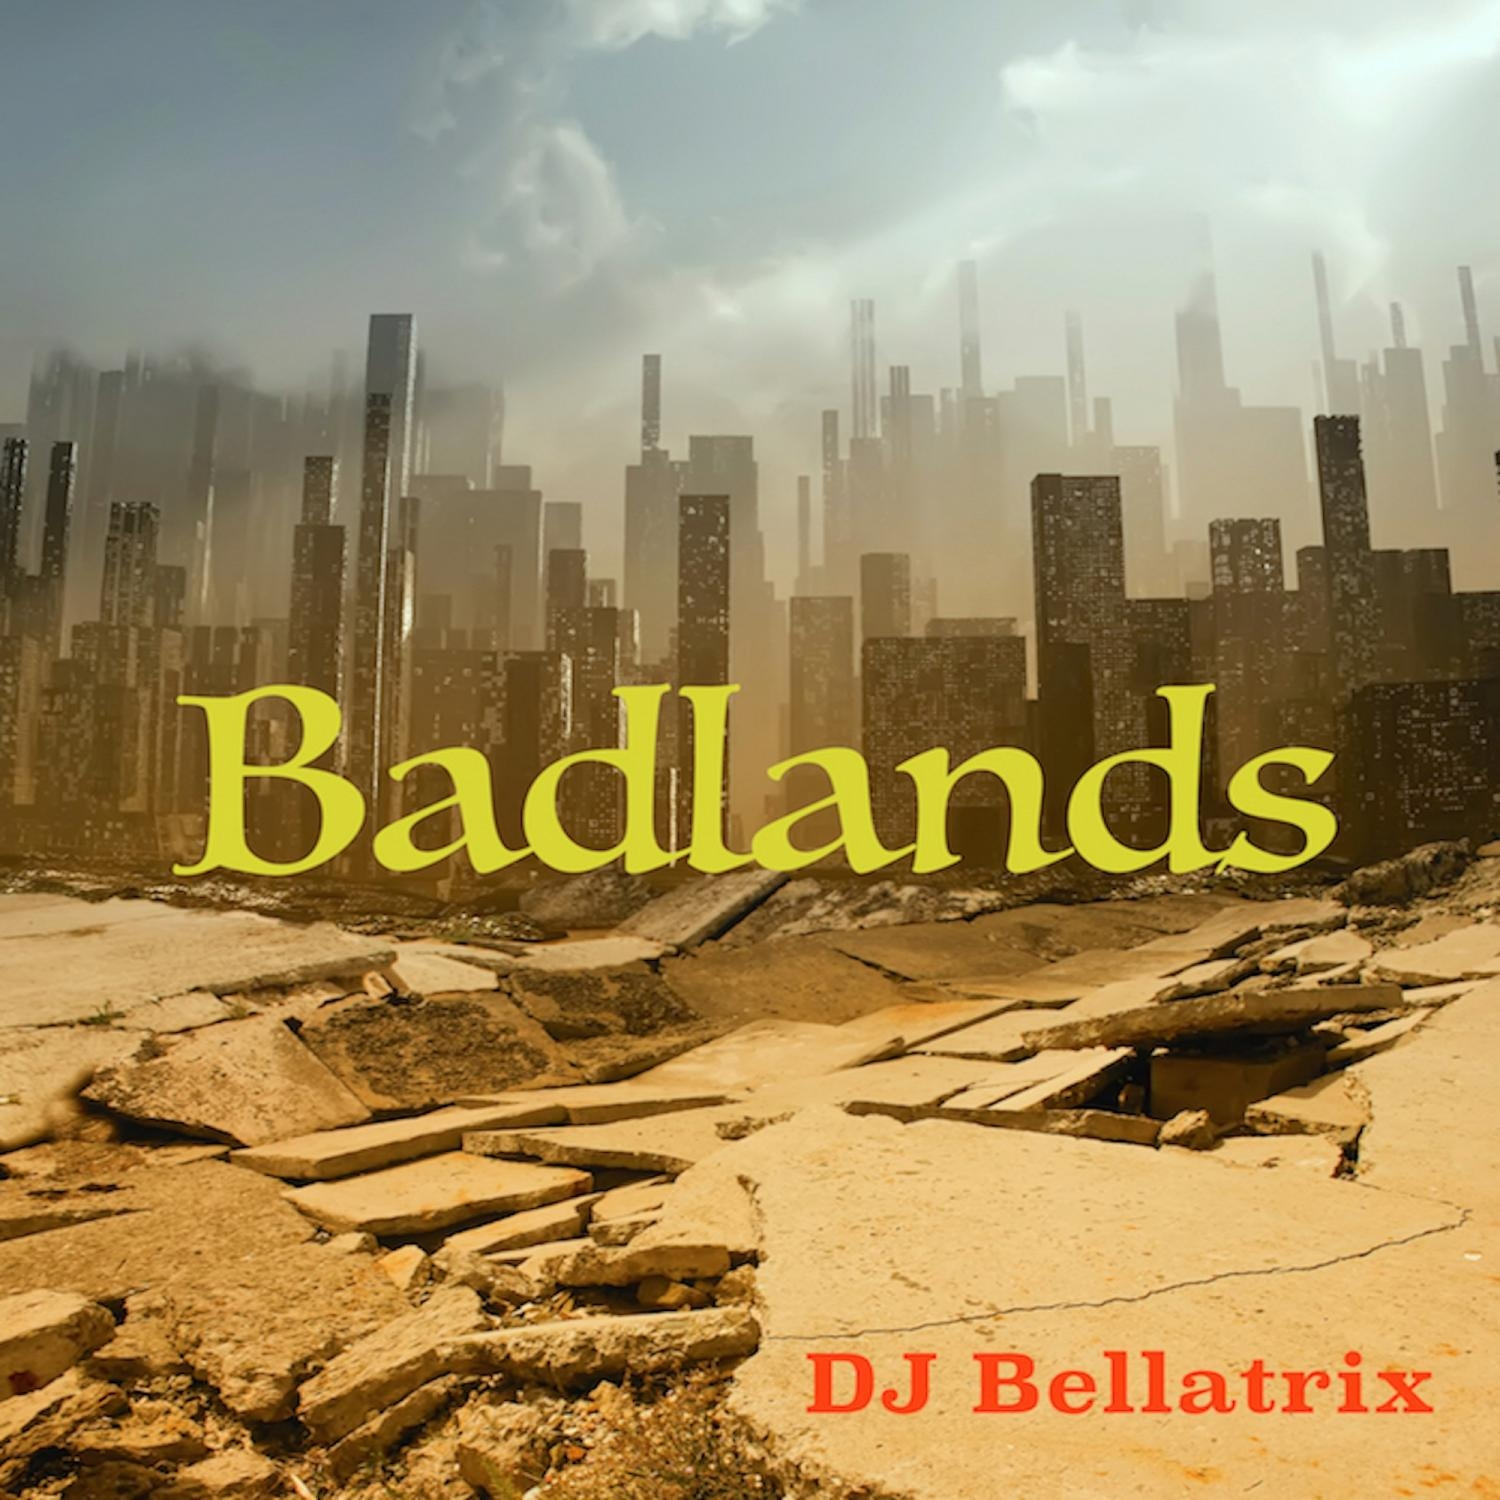 DJ Bellatrix - Badlands  (Original Mix)